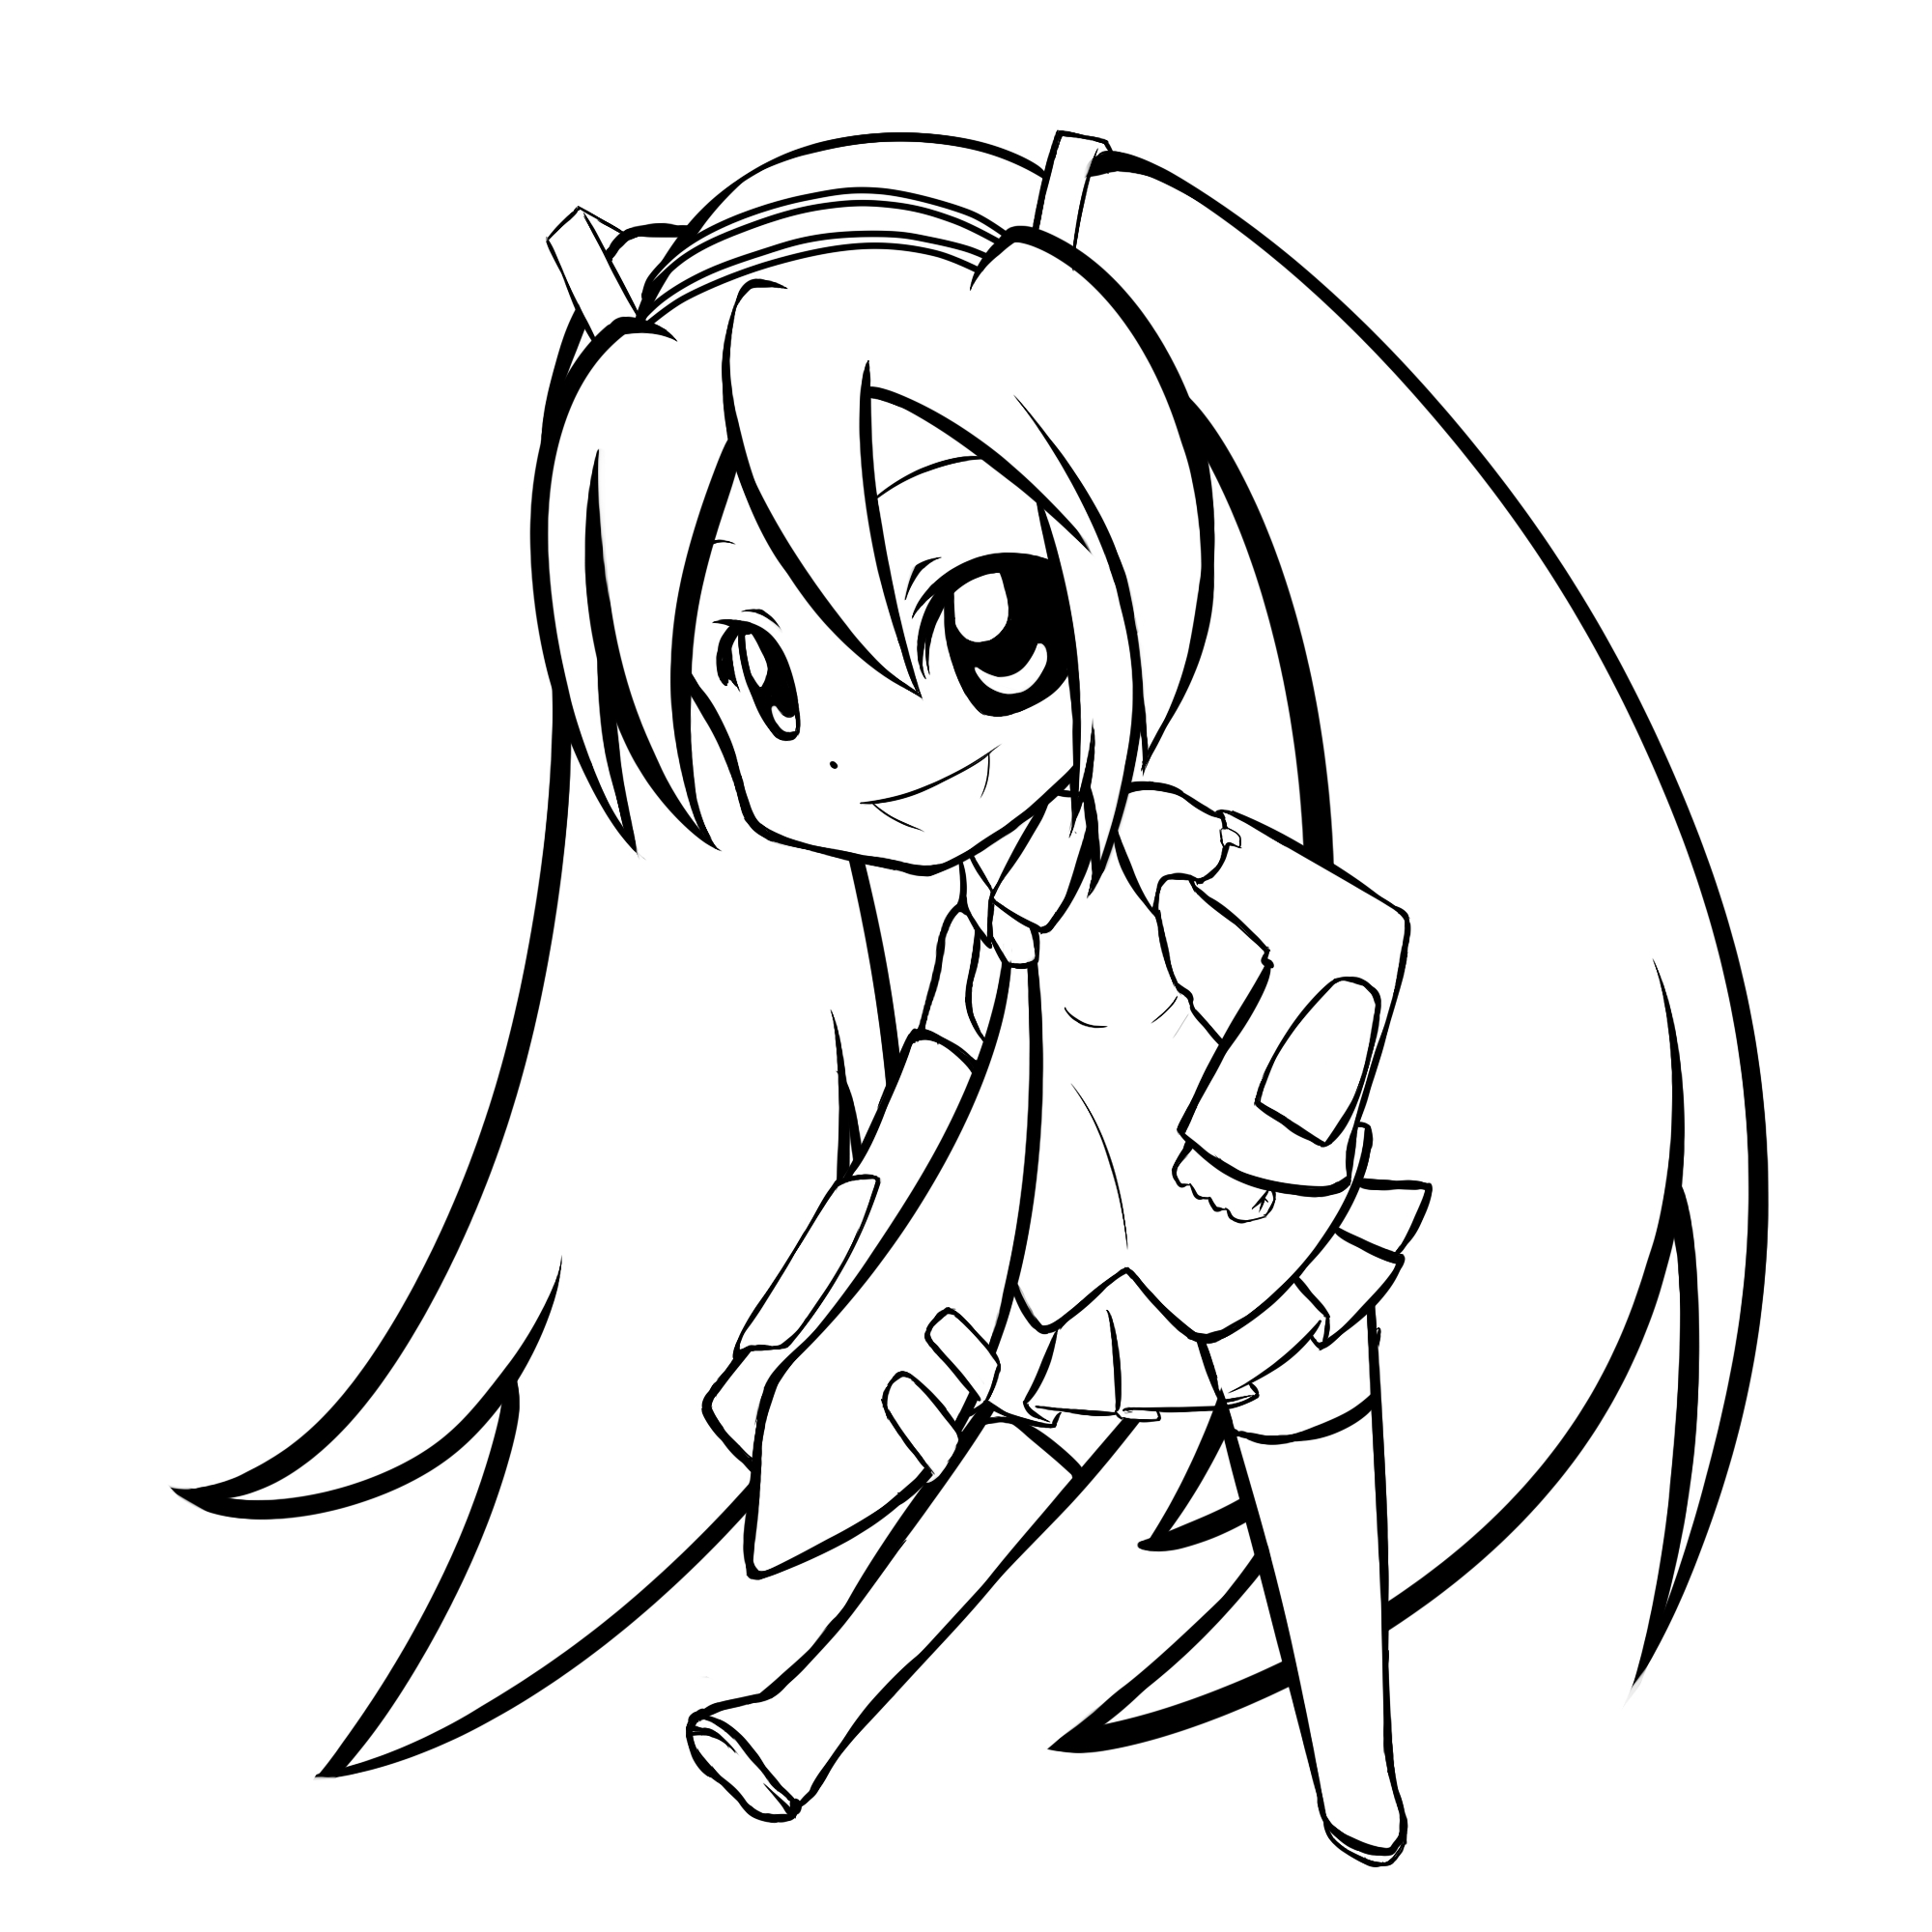 anime coloring pages easy easy drawings to draw anime angel girl get coloring pages coloring anime pages easy